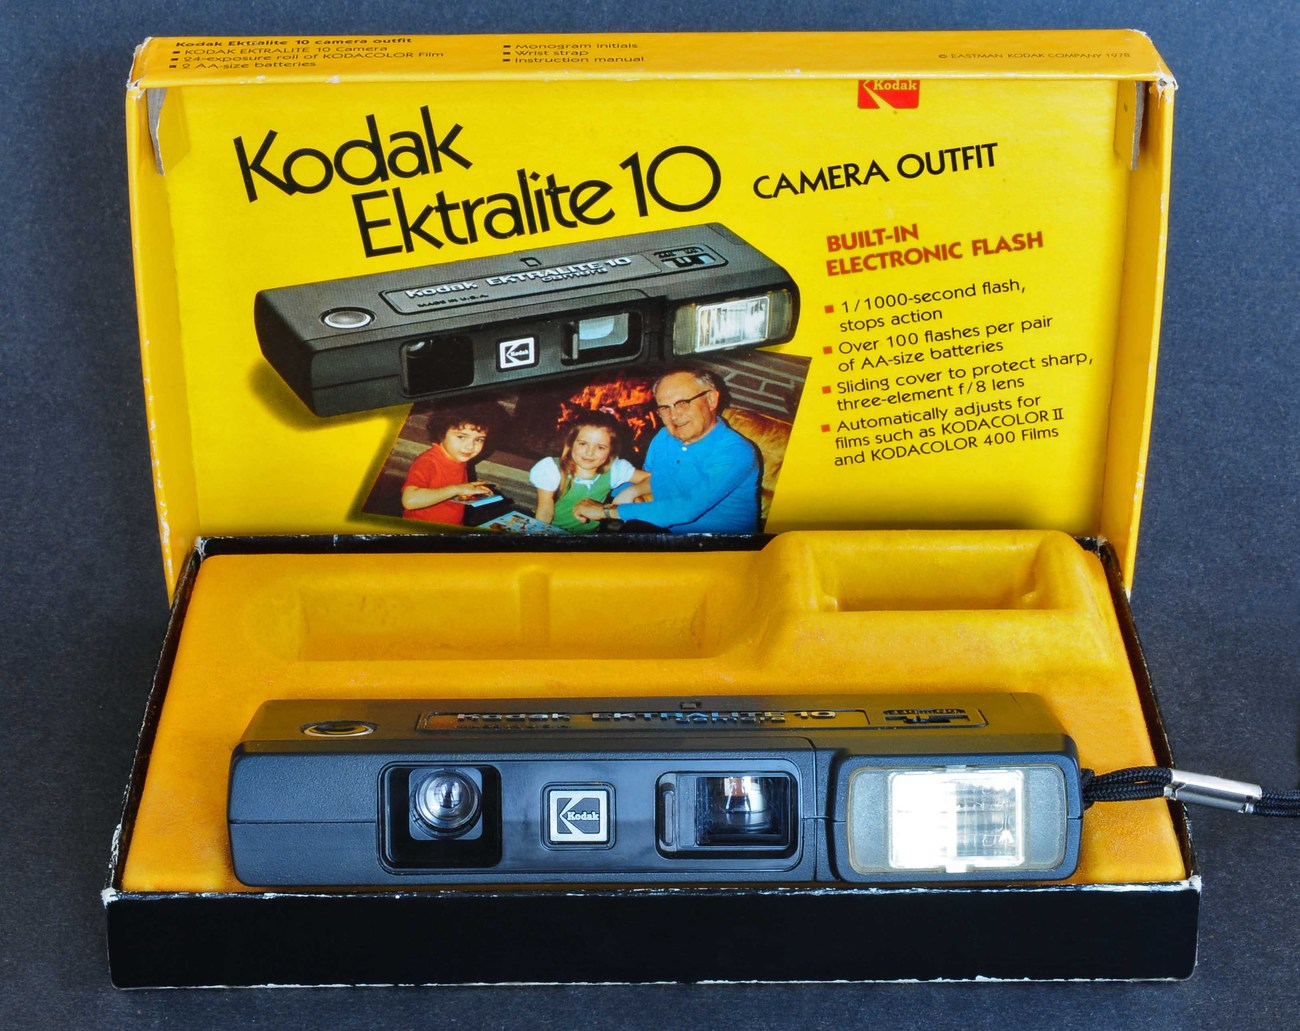 Primary image for Kodak Ektralite 10 Camera Outfit w Built-In Electronic Flash In Original Box